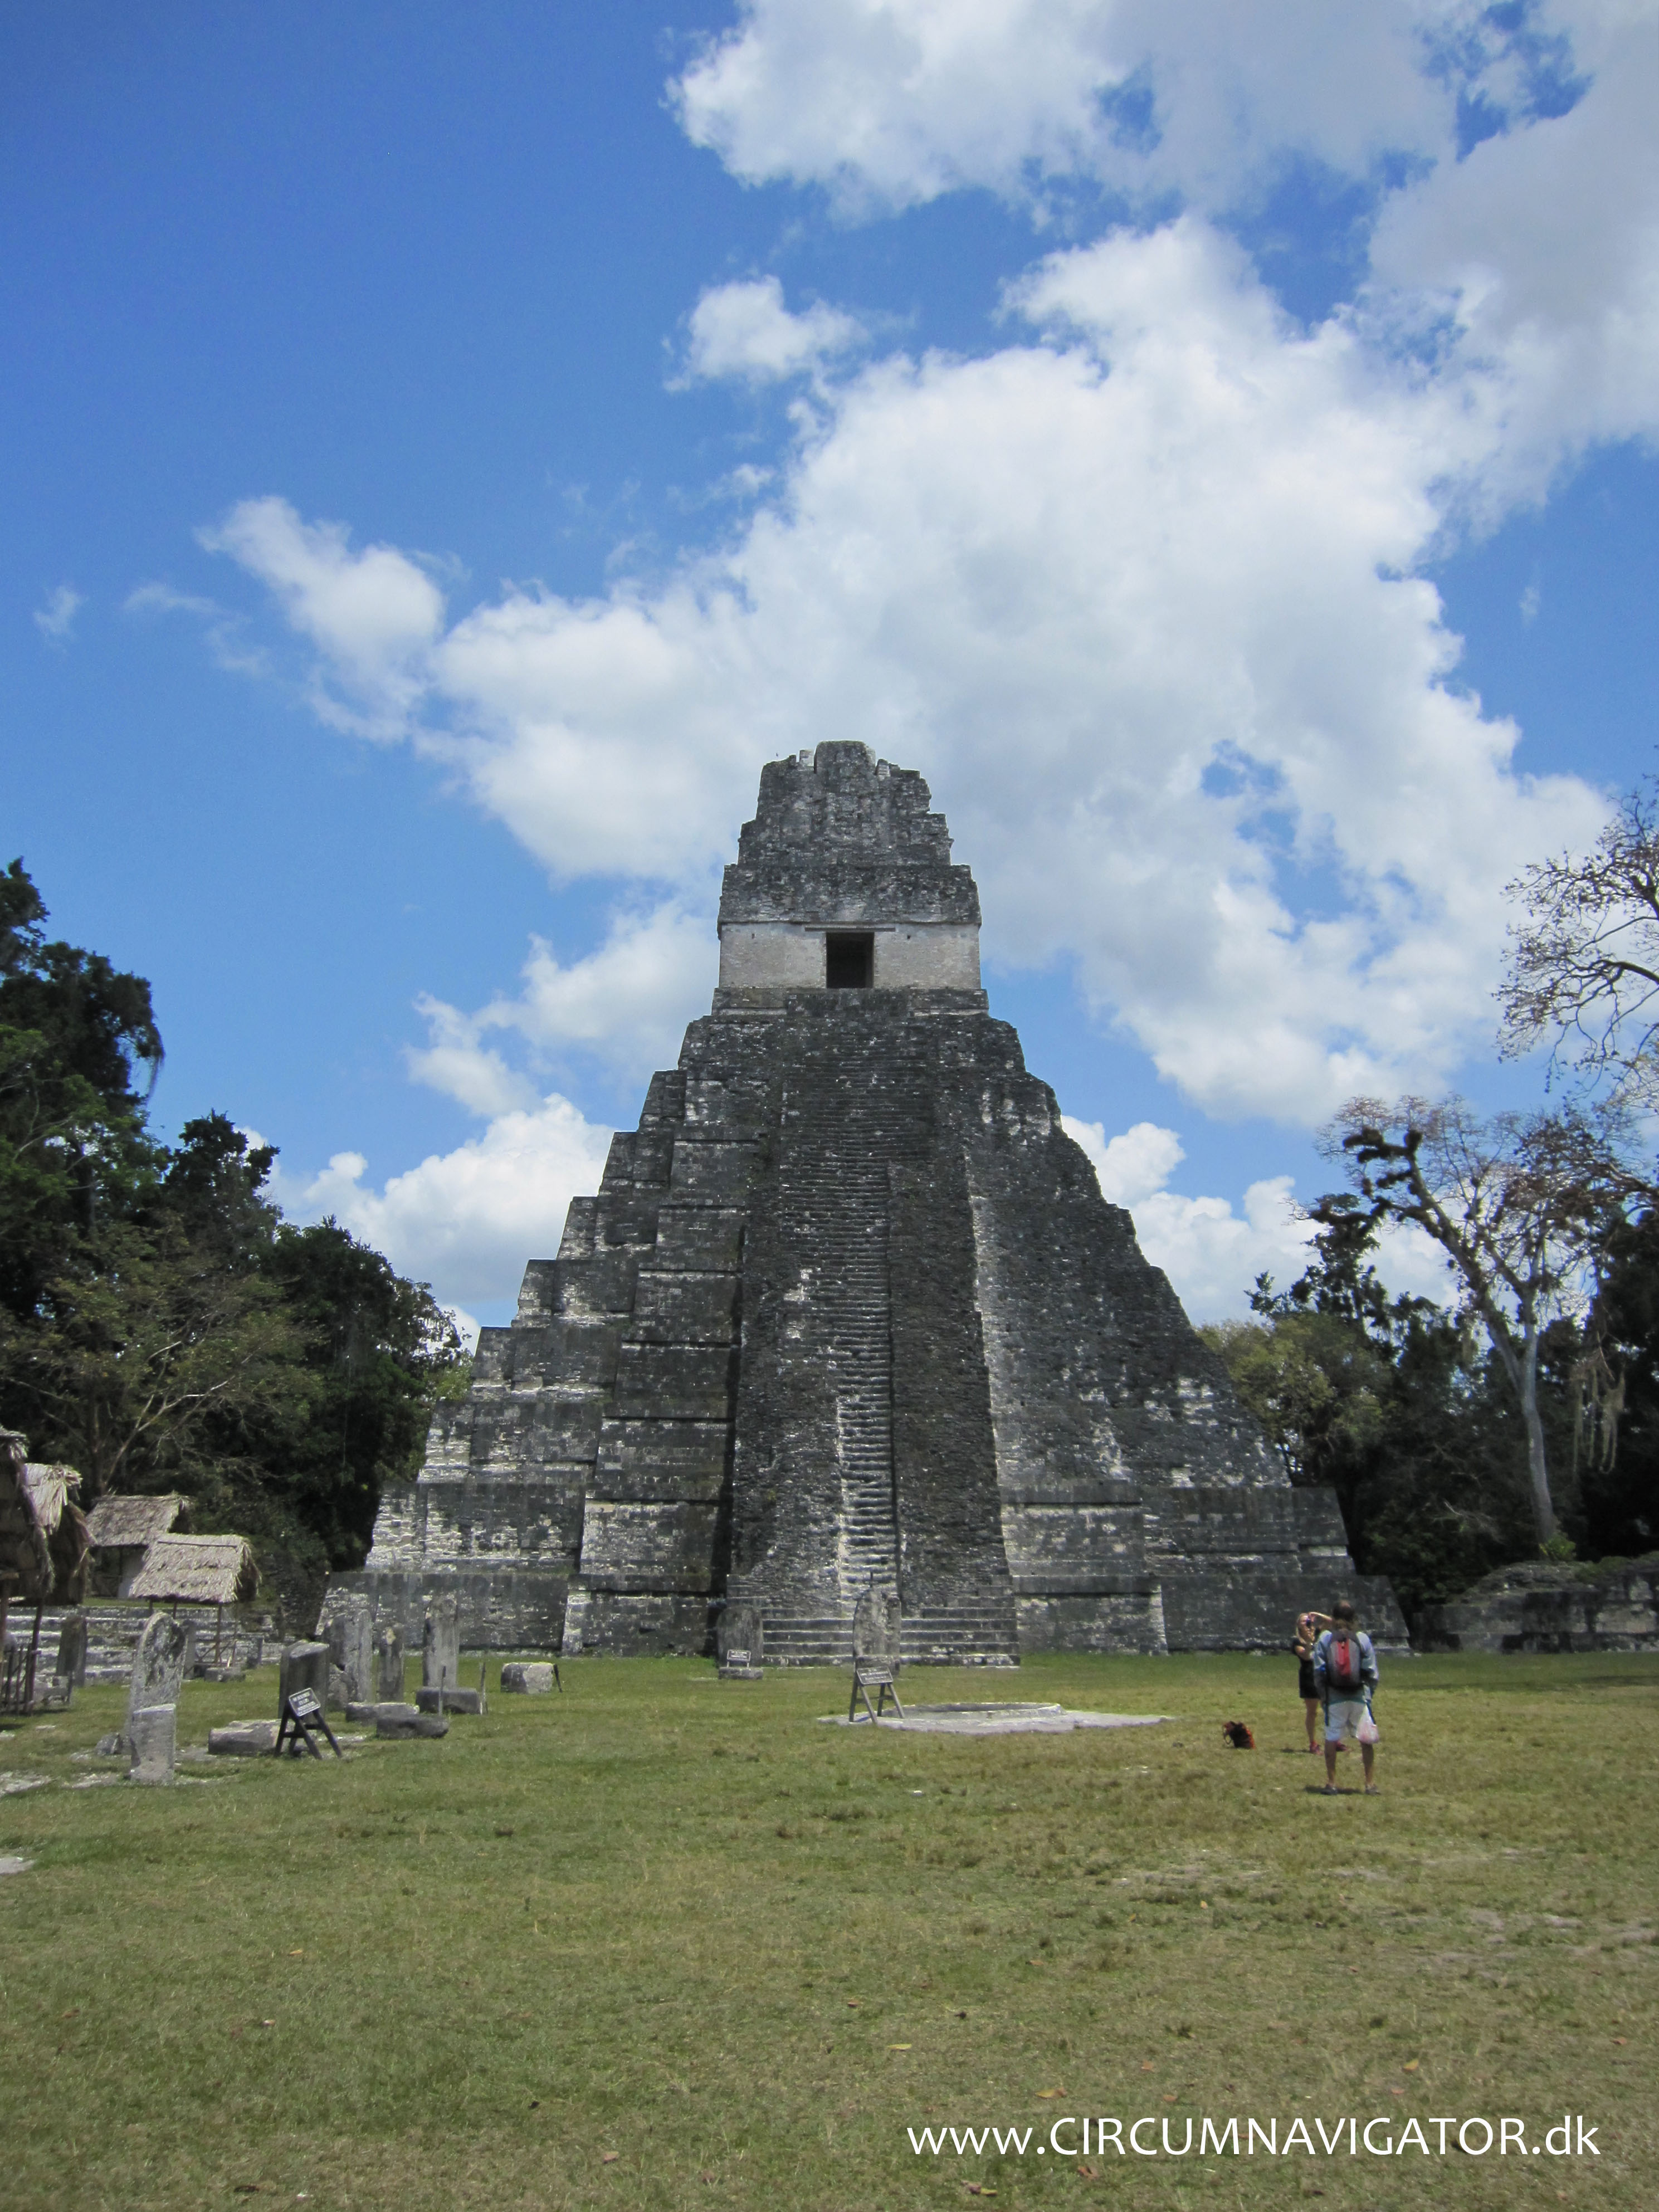 The Mayan myth – Is it the end of the World?